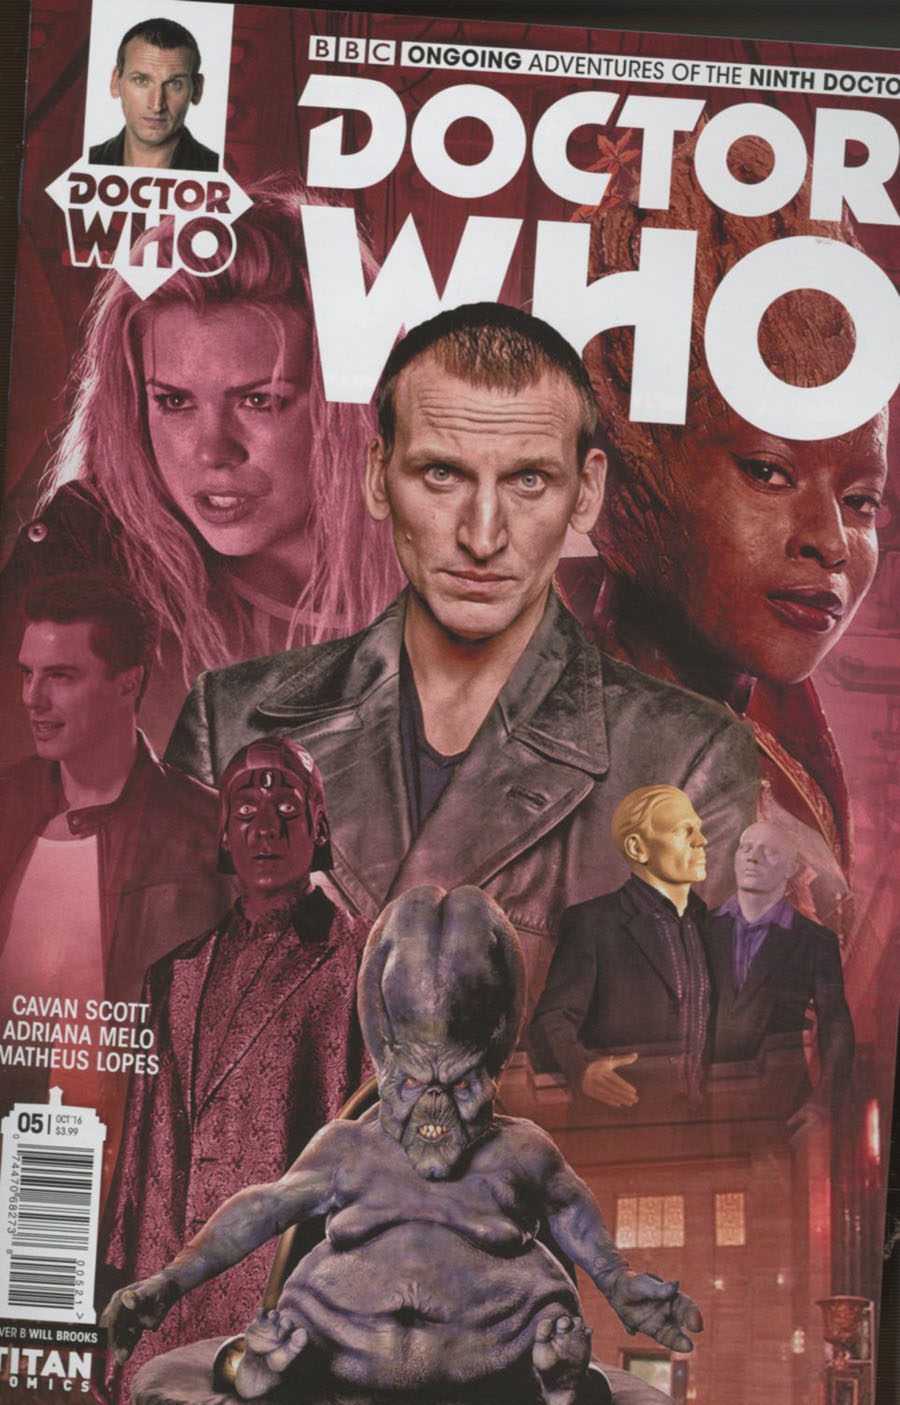 Doctor Who 9th Doctor Vol 2 #5 Cover B Variant Photo Cover